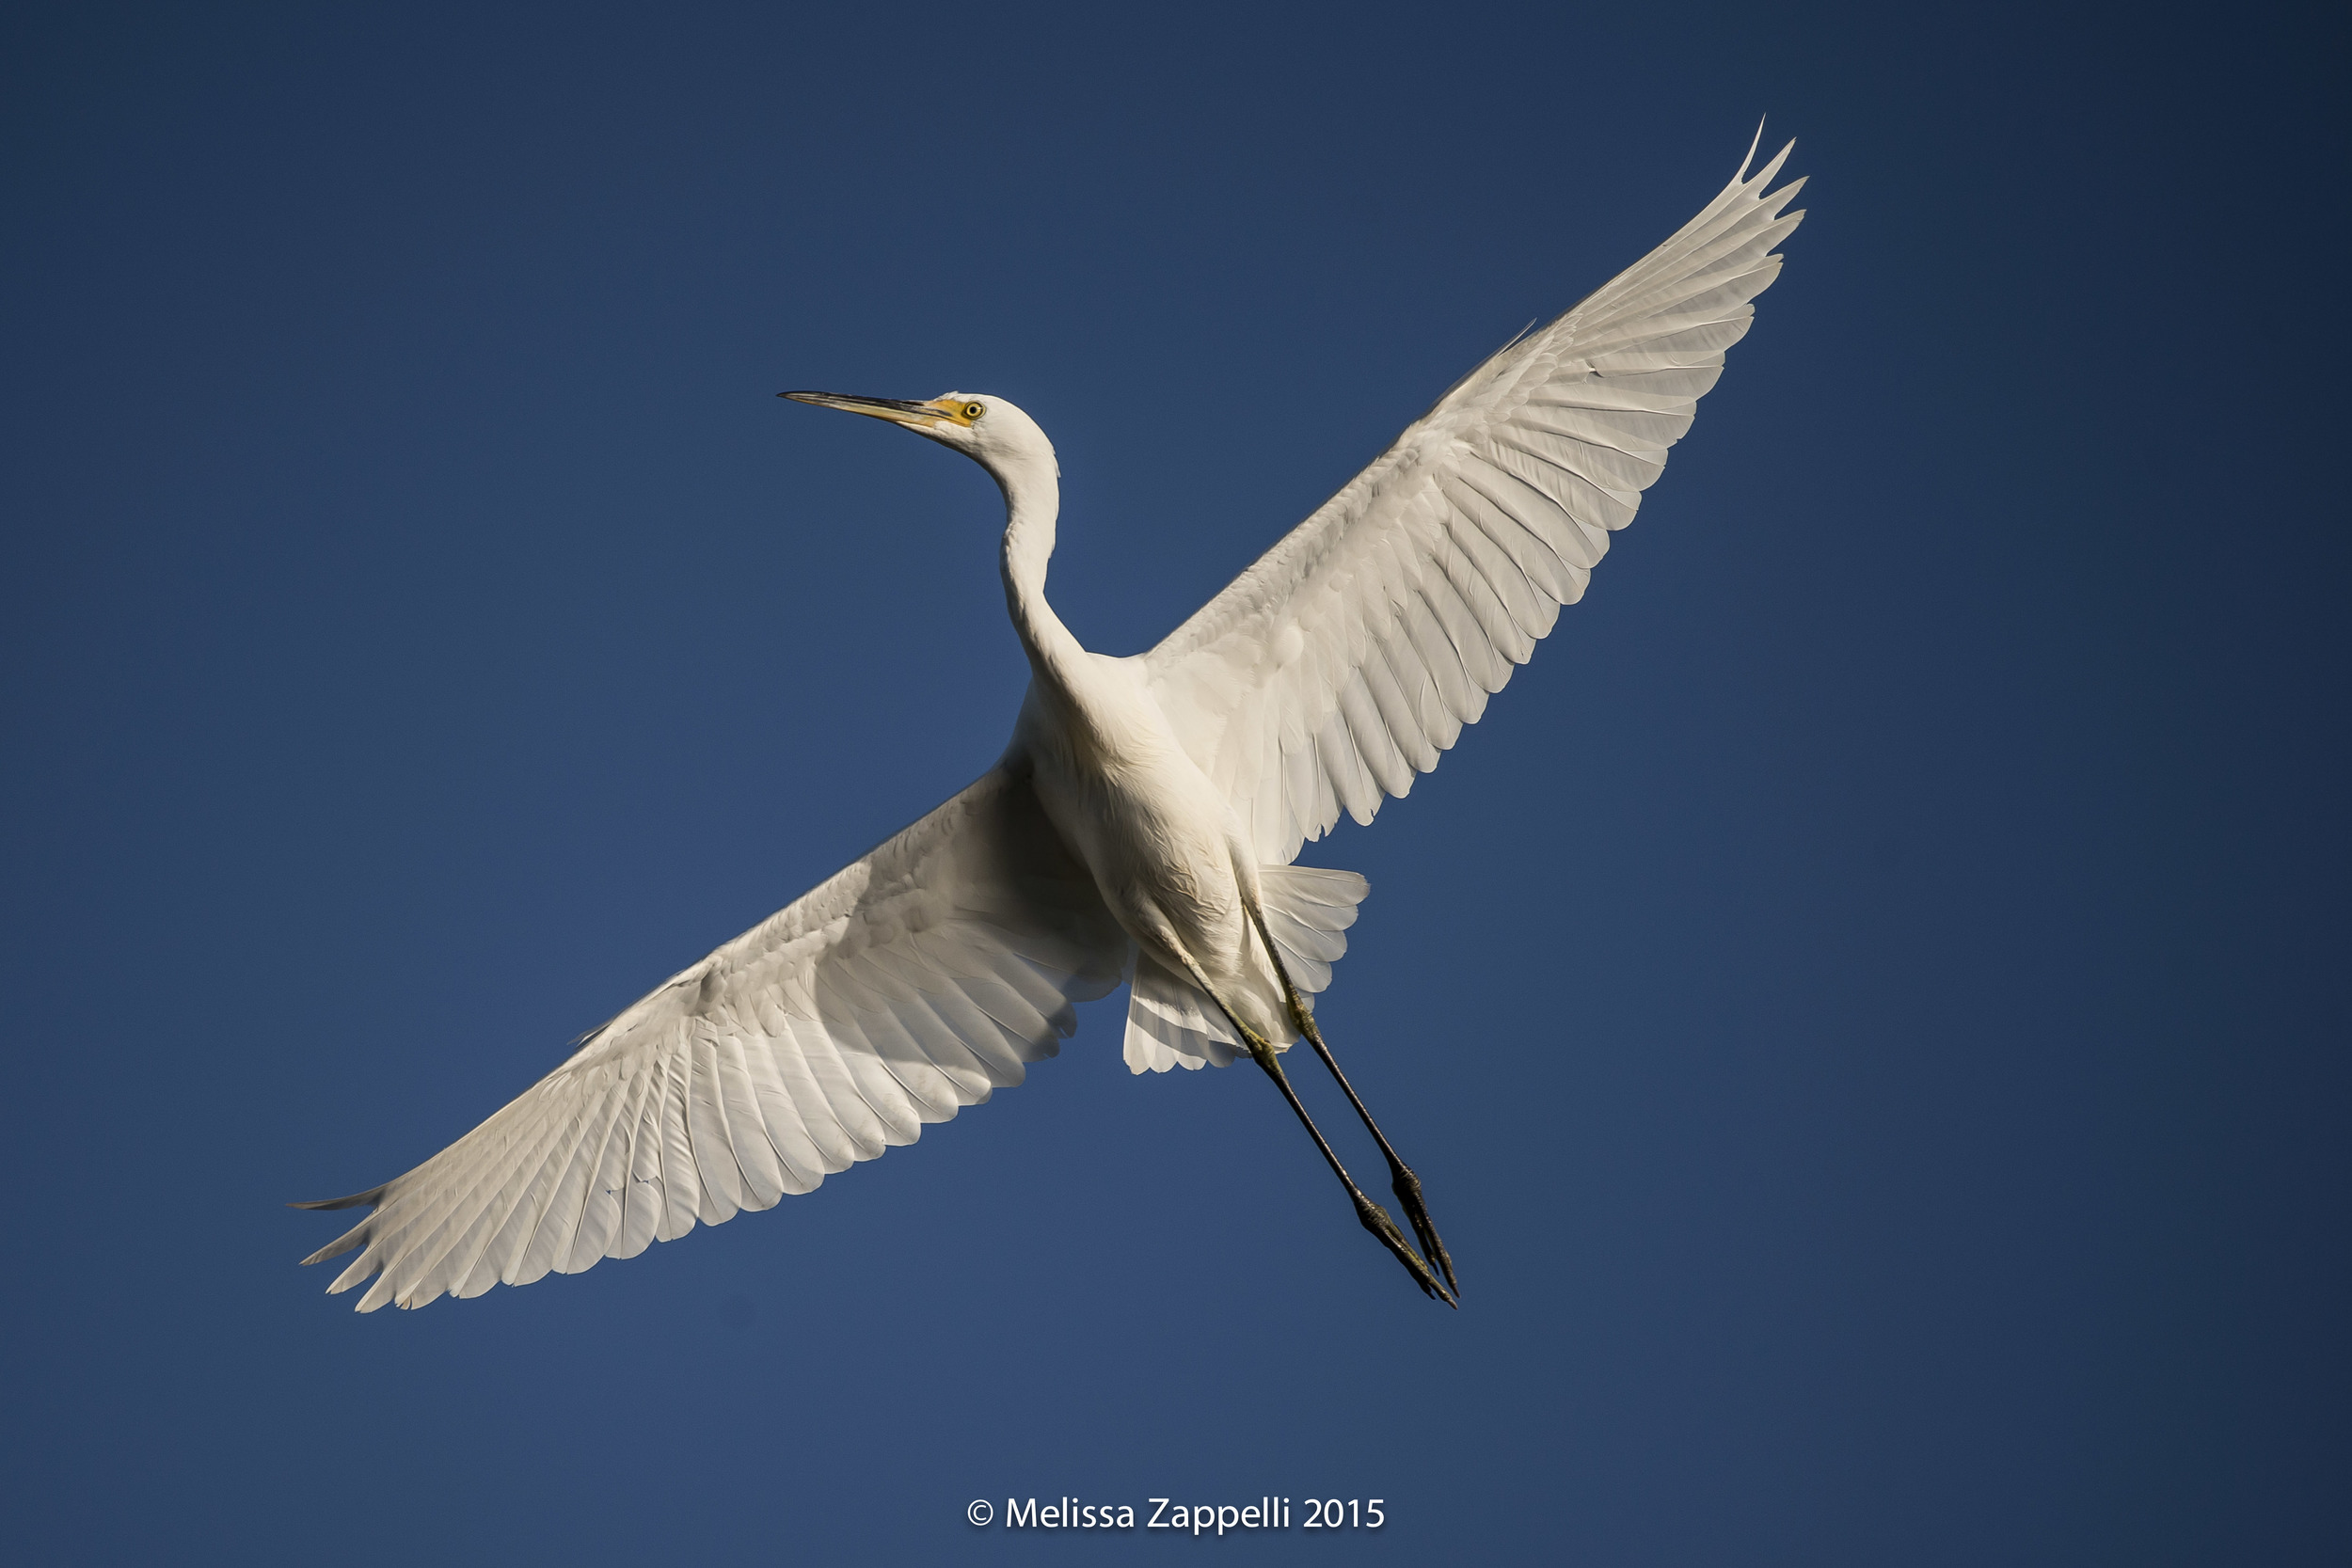 Great Egret in bright sunlight - Camera settings; ISO 320, 400mm, f10, 1/3200